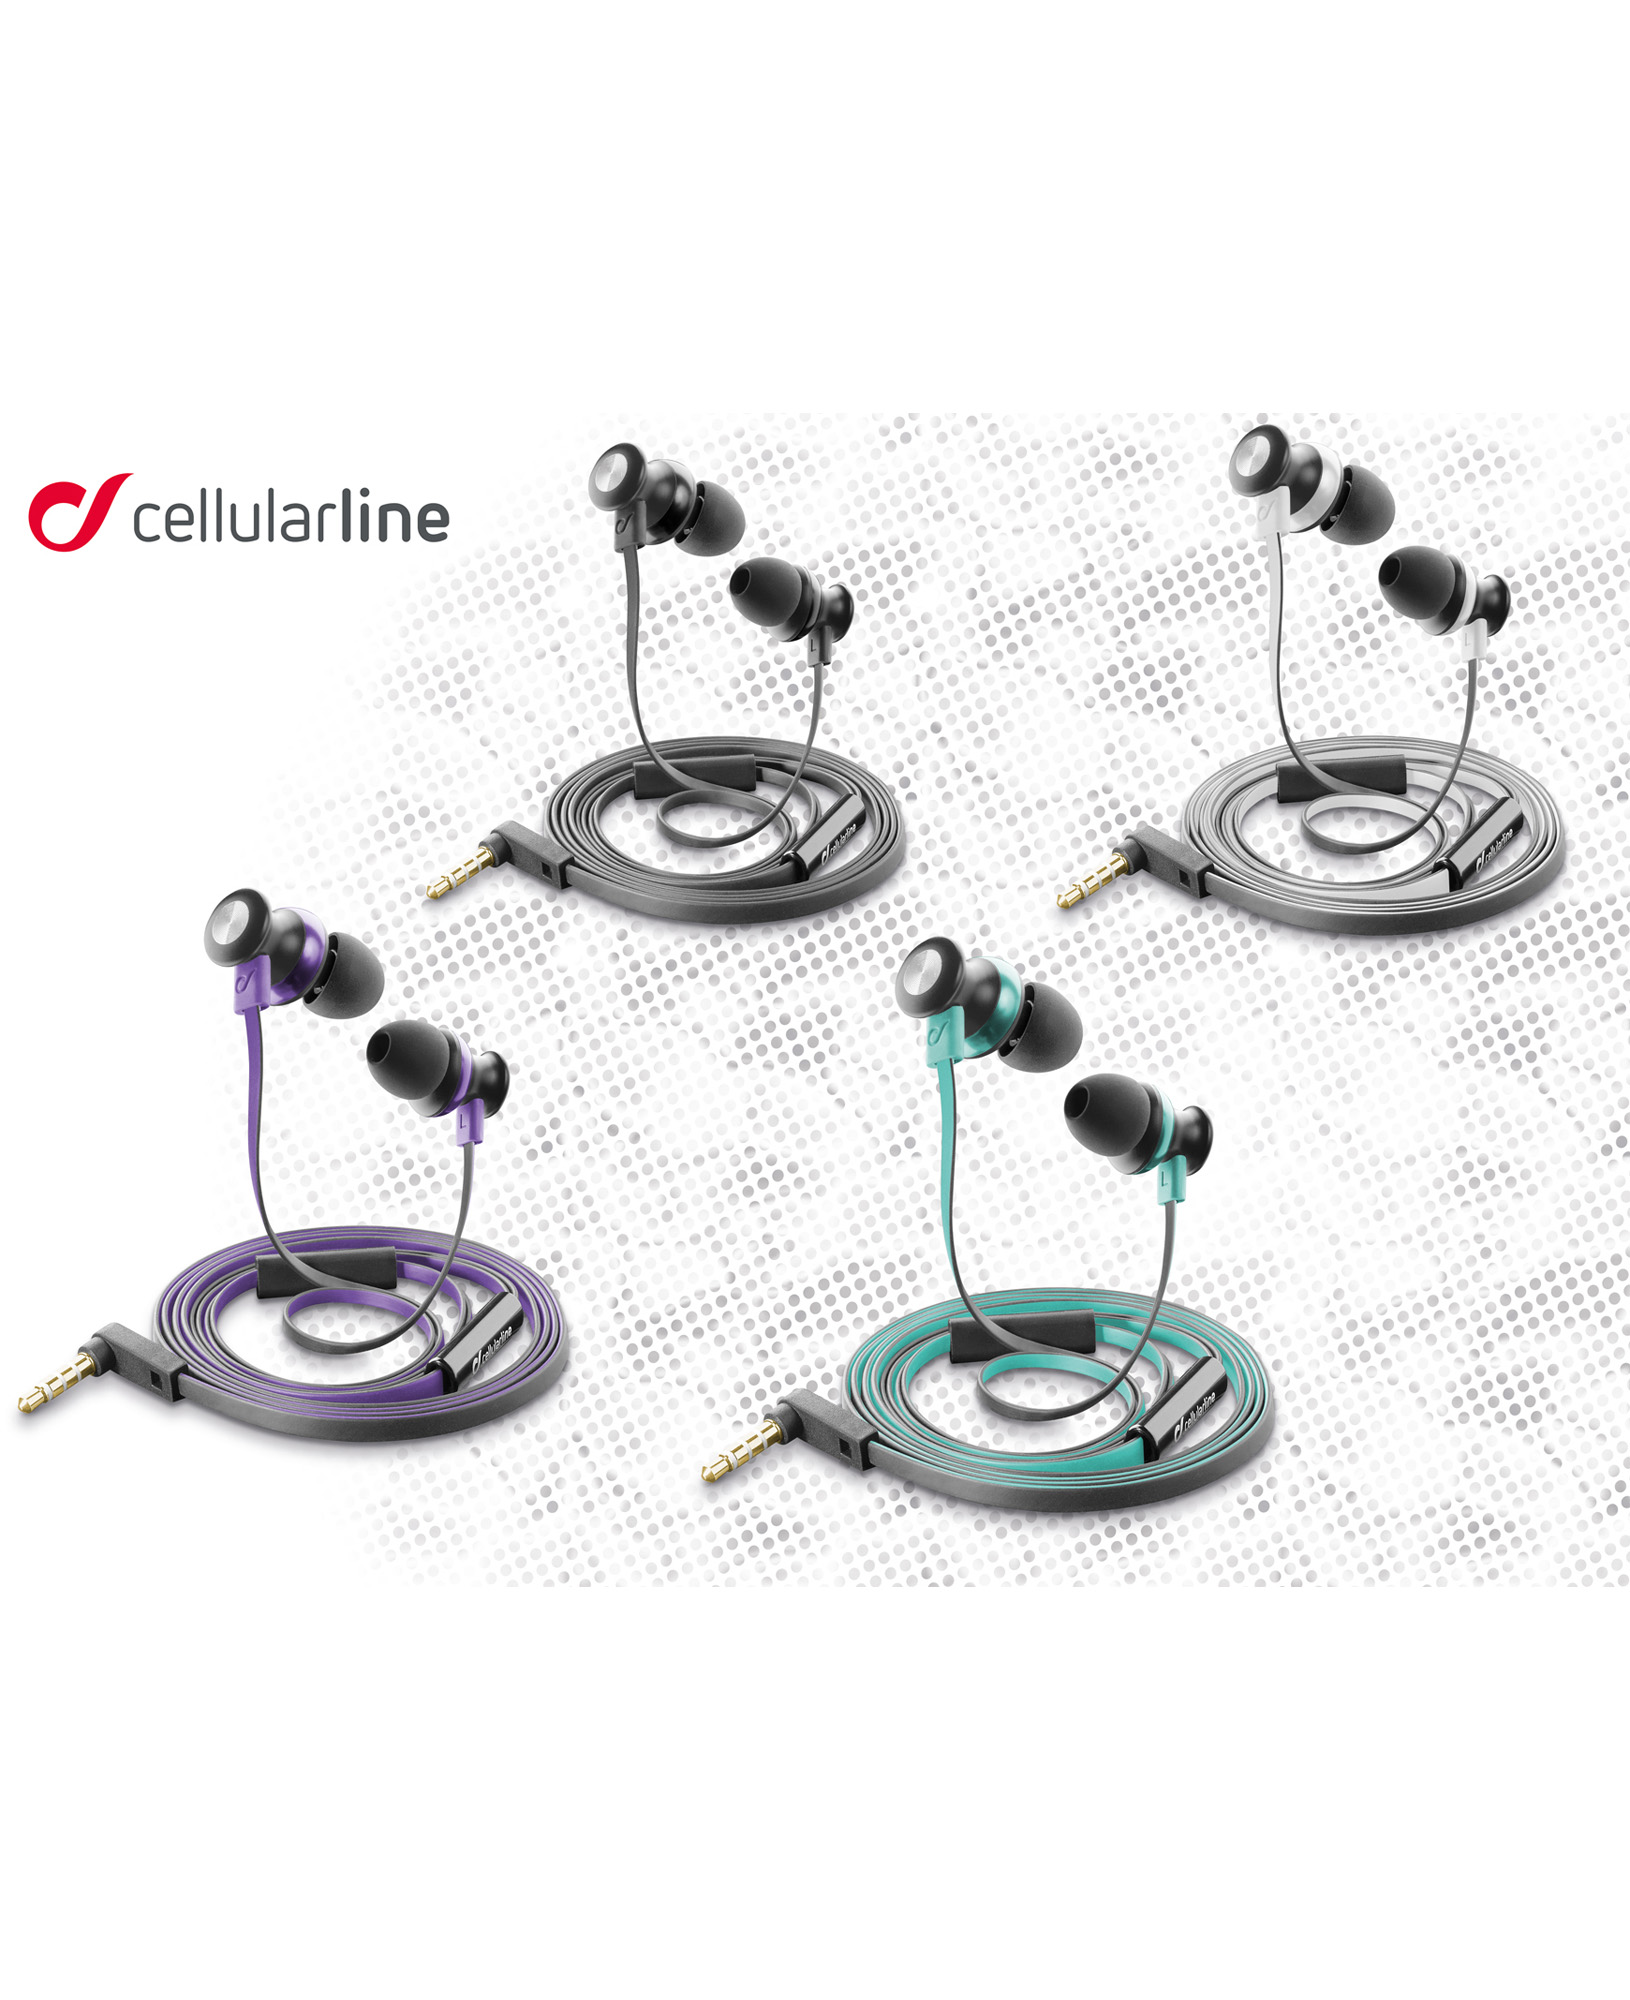 131101e17db Product data Cellularline Bug mobile headset Binaural In-ear Black ...